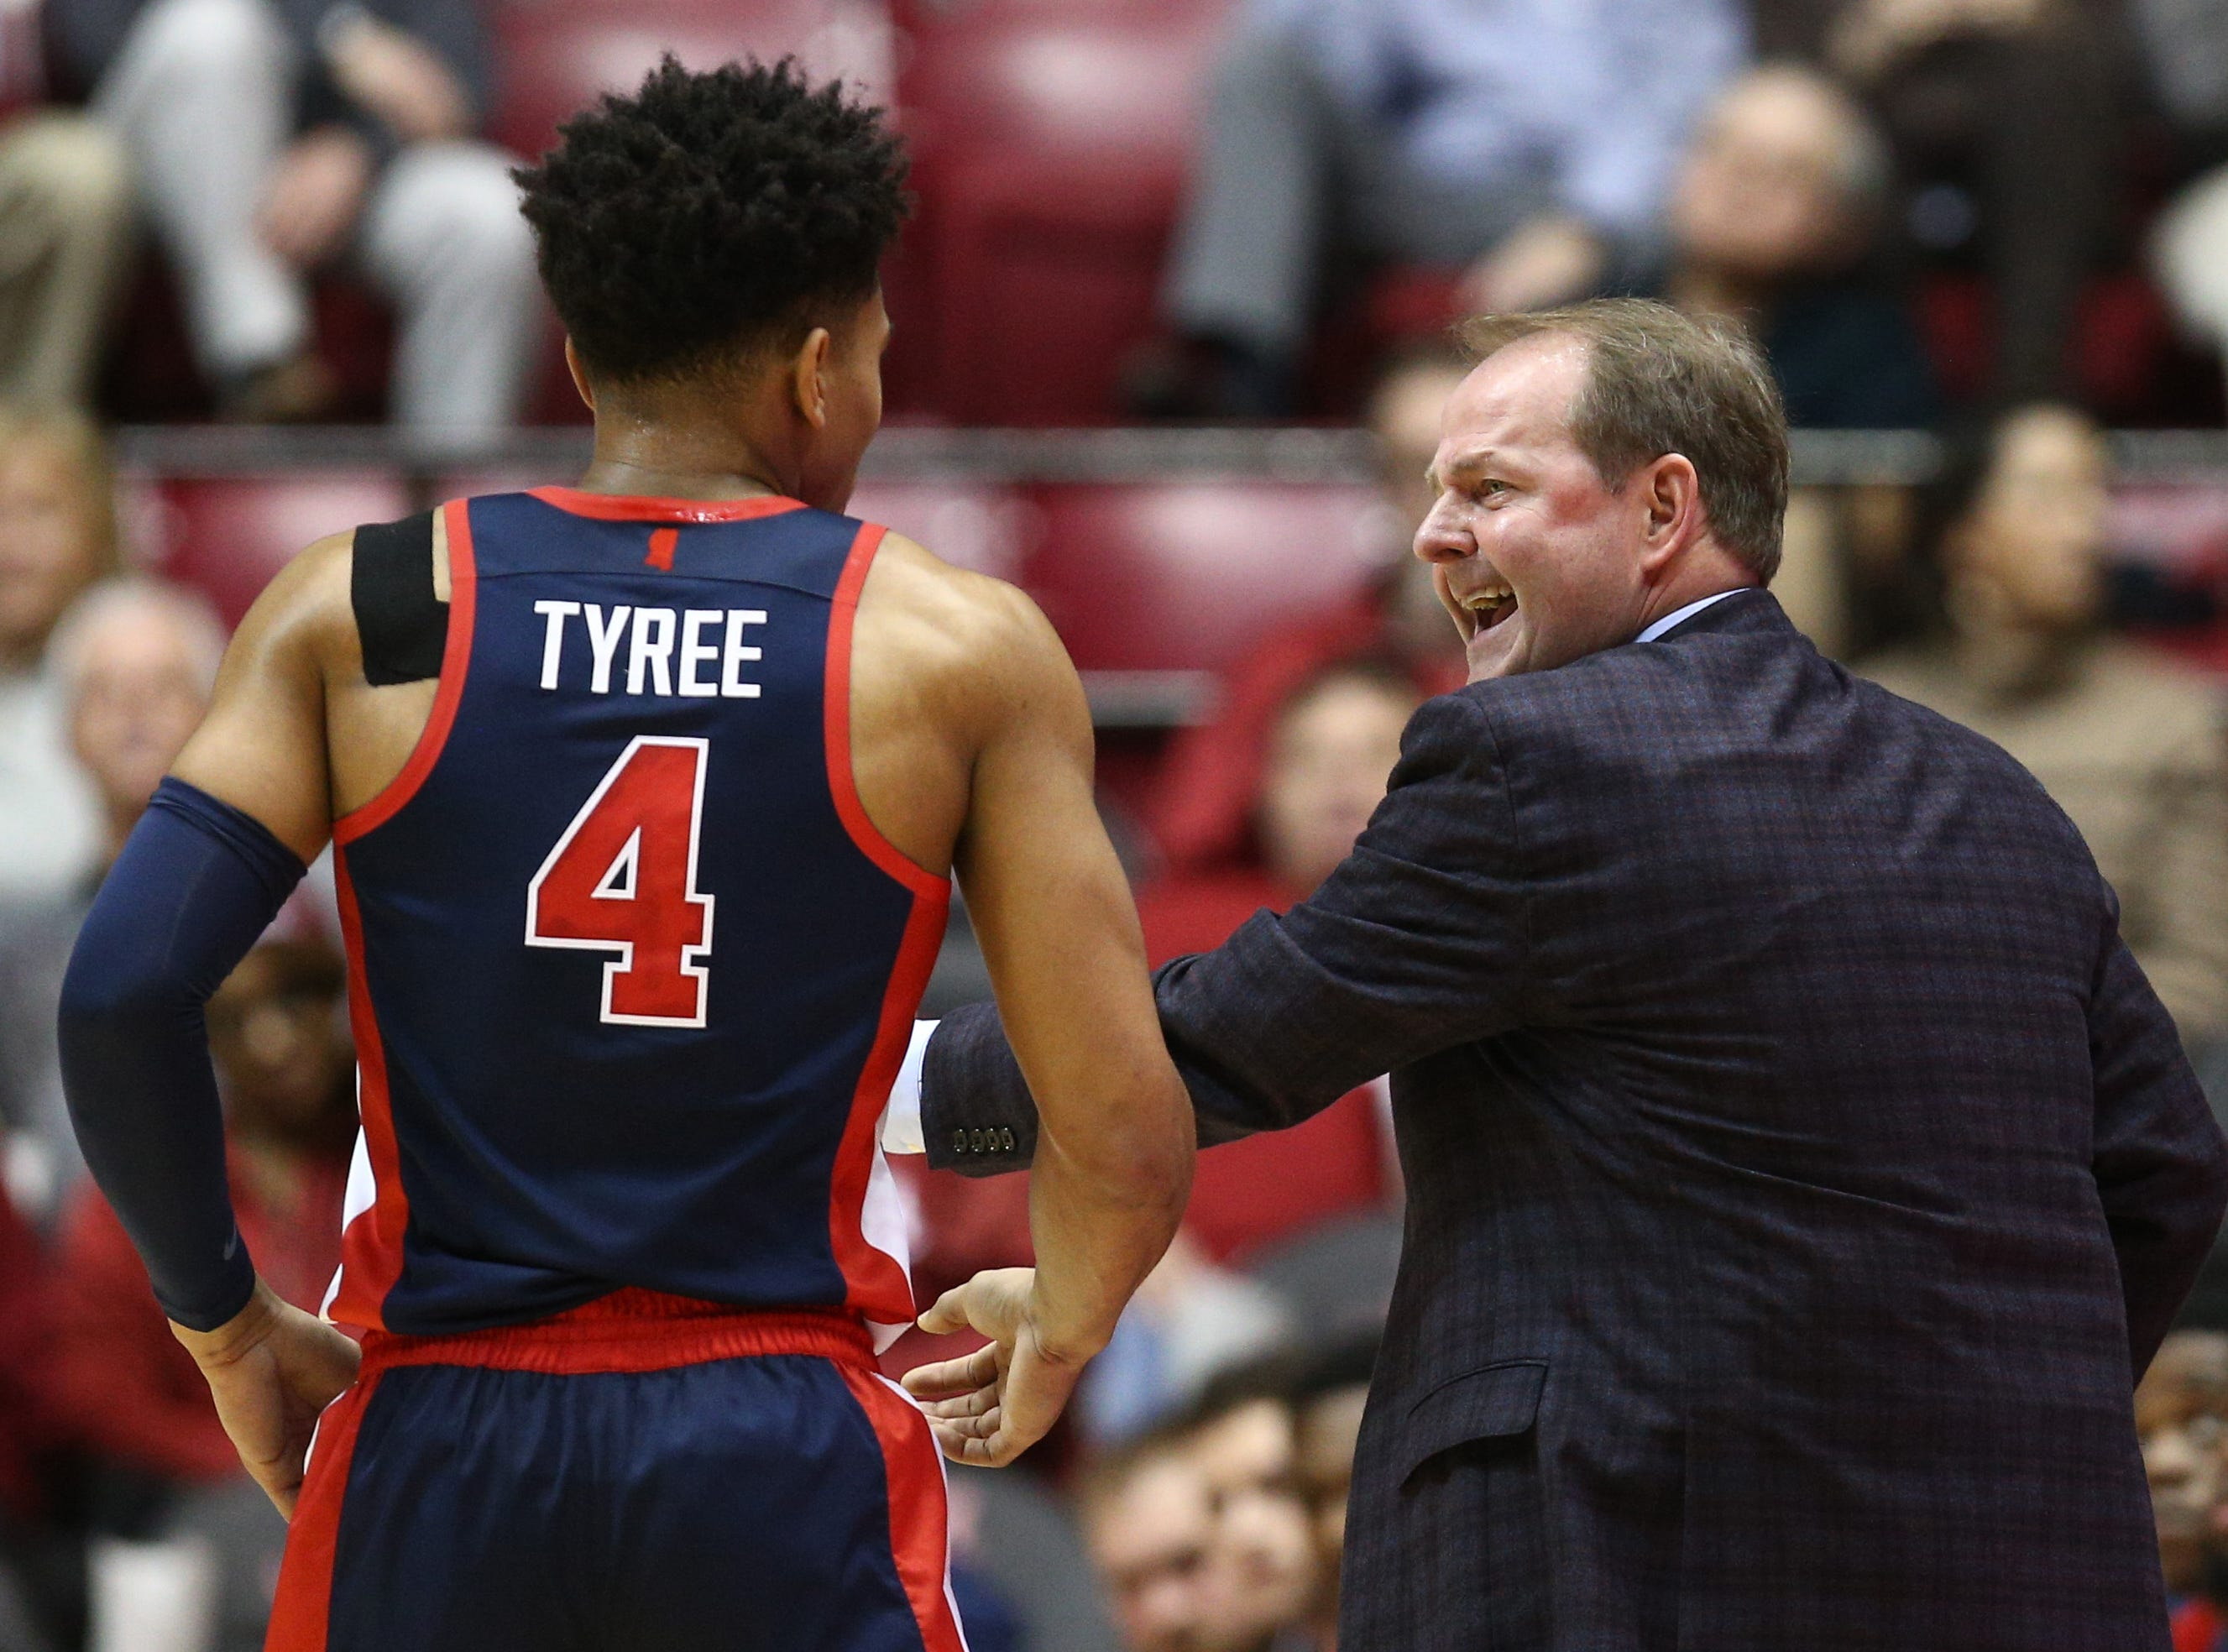 Jan 22, 2019; Tuscaloosa, AL, USA; Mississippi Rebels head coach Kermit Davis talks to Mississippi Rebels guard Breein Tyree (4) during the first half in the game against Alabama Crimson Tide at Coleman Coliseum. Mandatory Credit: Marvin Gentry-USA TODAY Sports